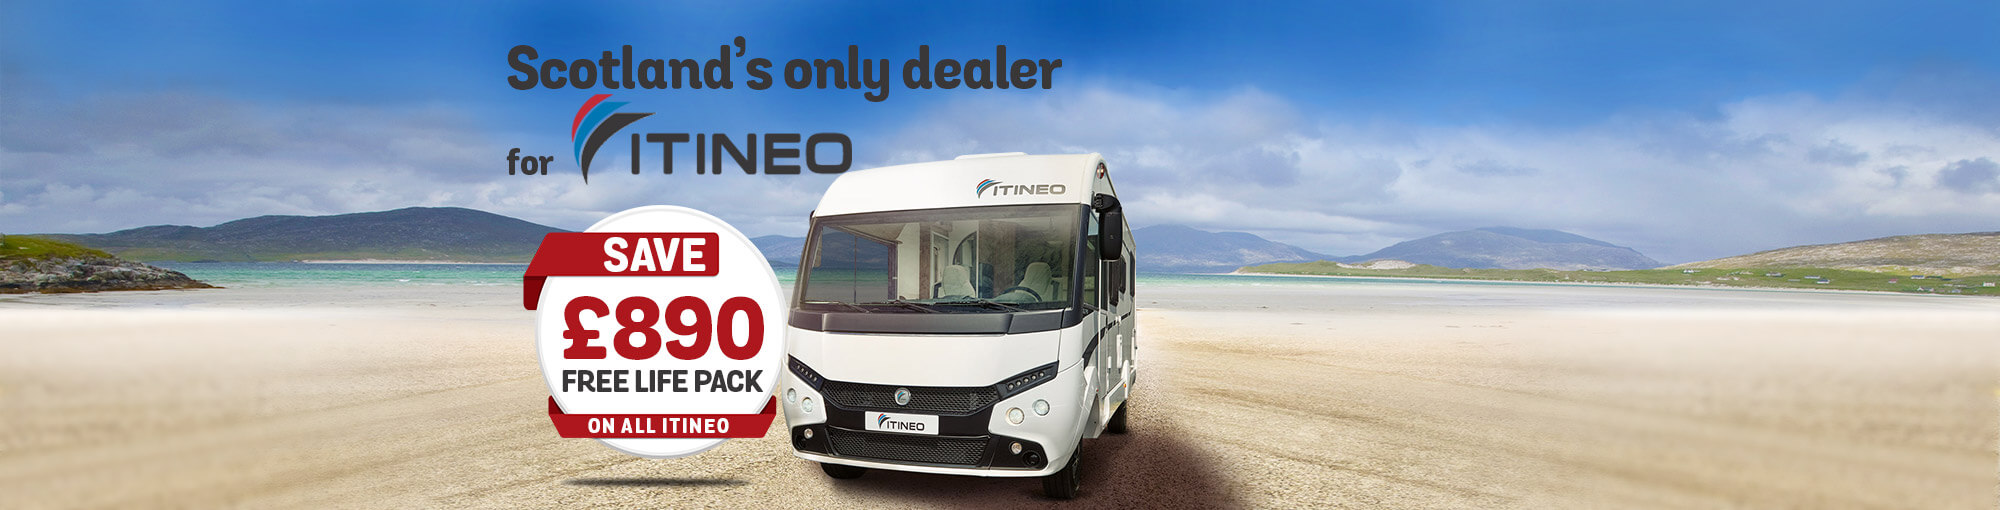 Itineo save £890 free life pack